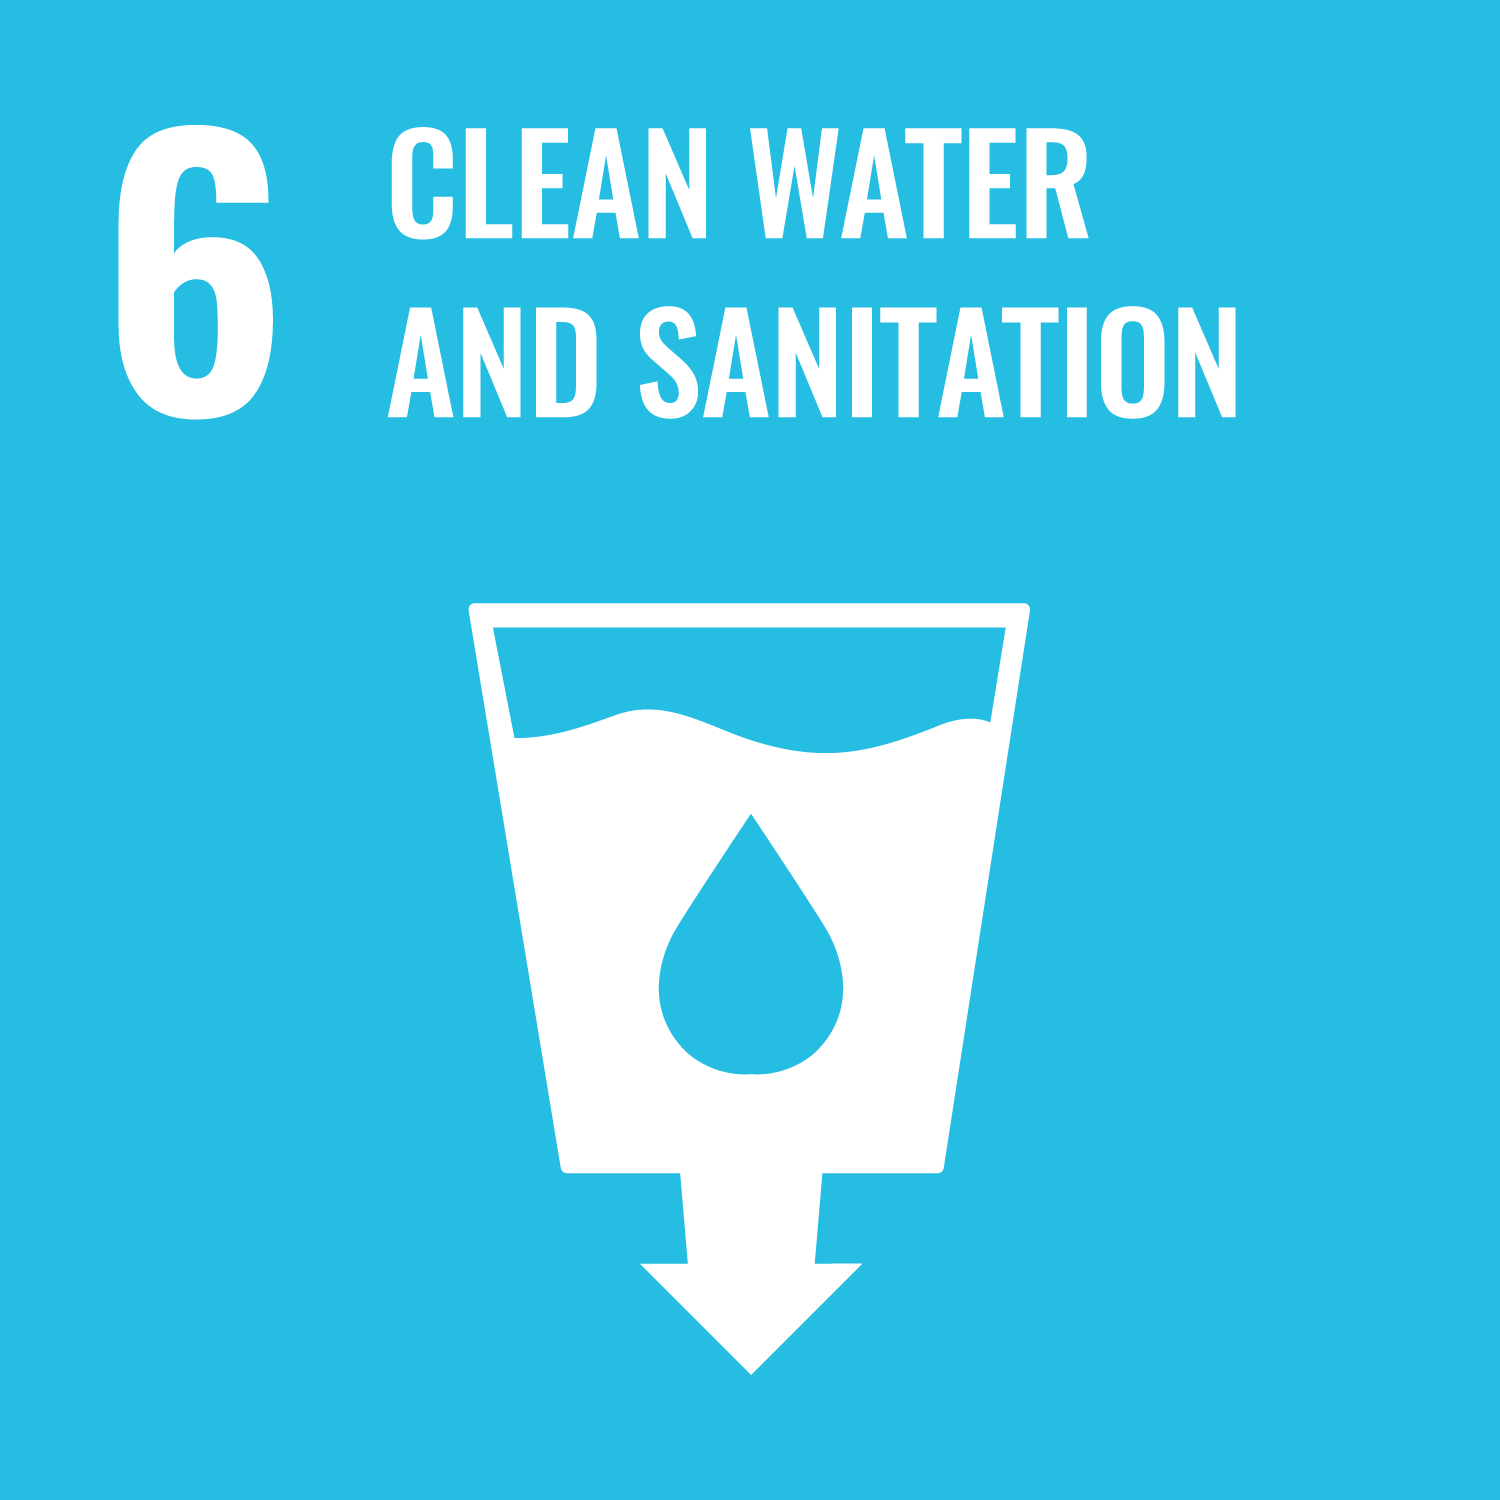 Sustainable Development Goal 6. Ensure availability and sustainable management of water and sanitation for all.